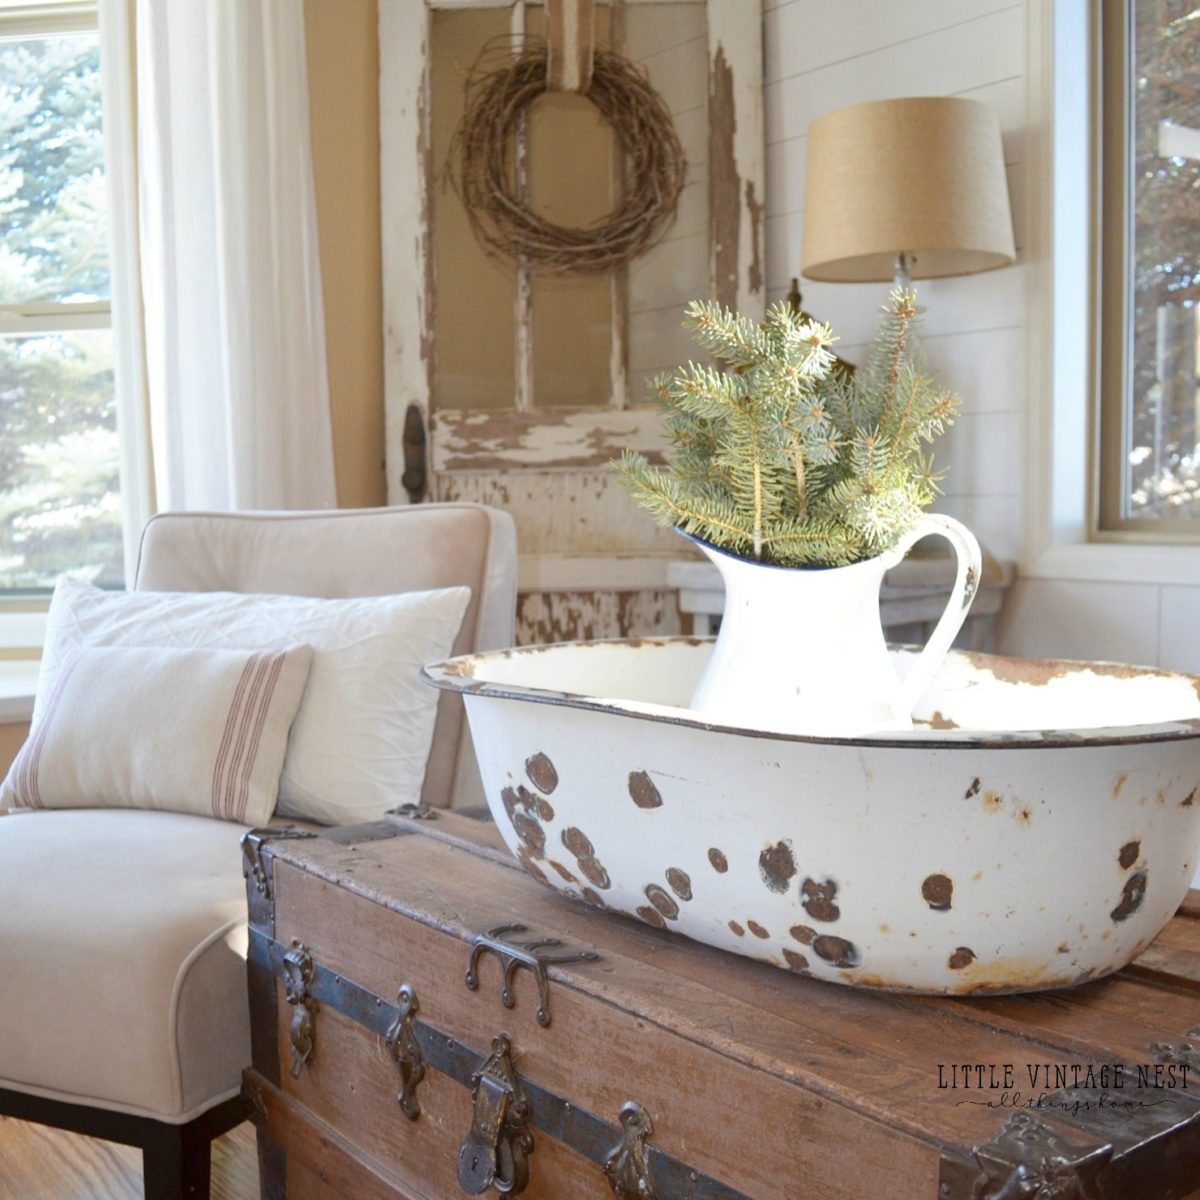 Winter decor 101 blog hop little vintage nest for Home decor blogs